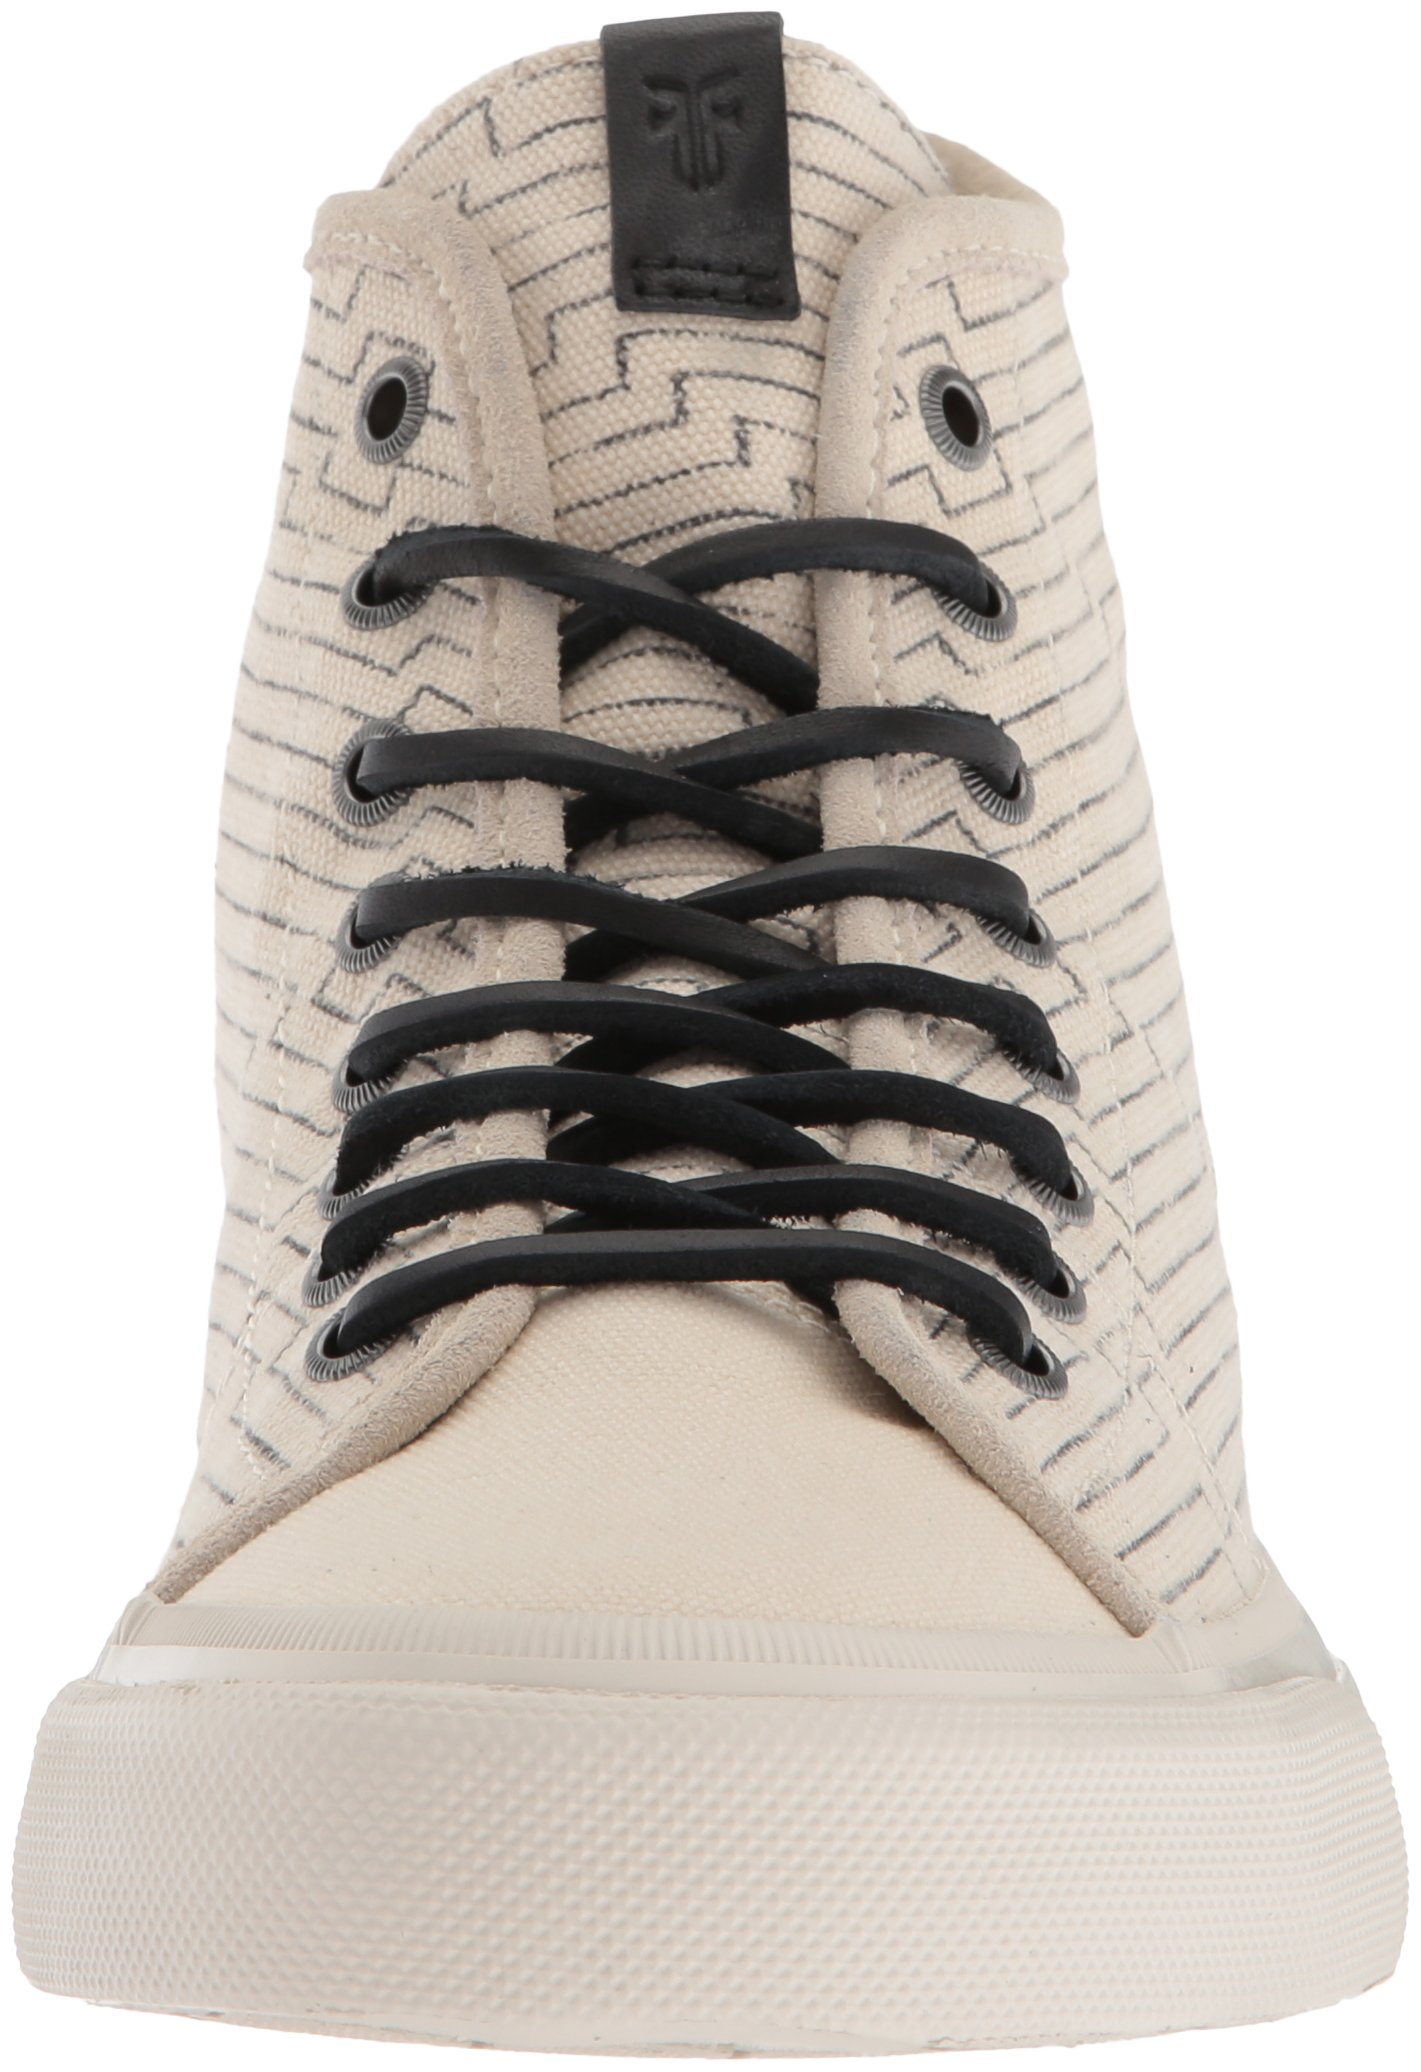 FRYE Men's Ludlow High Canvas Print Sneaker, Off White, 8.5 Medium US by FRYE (Image #4)